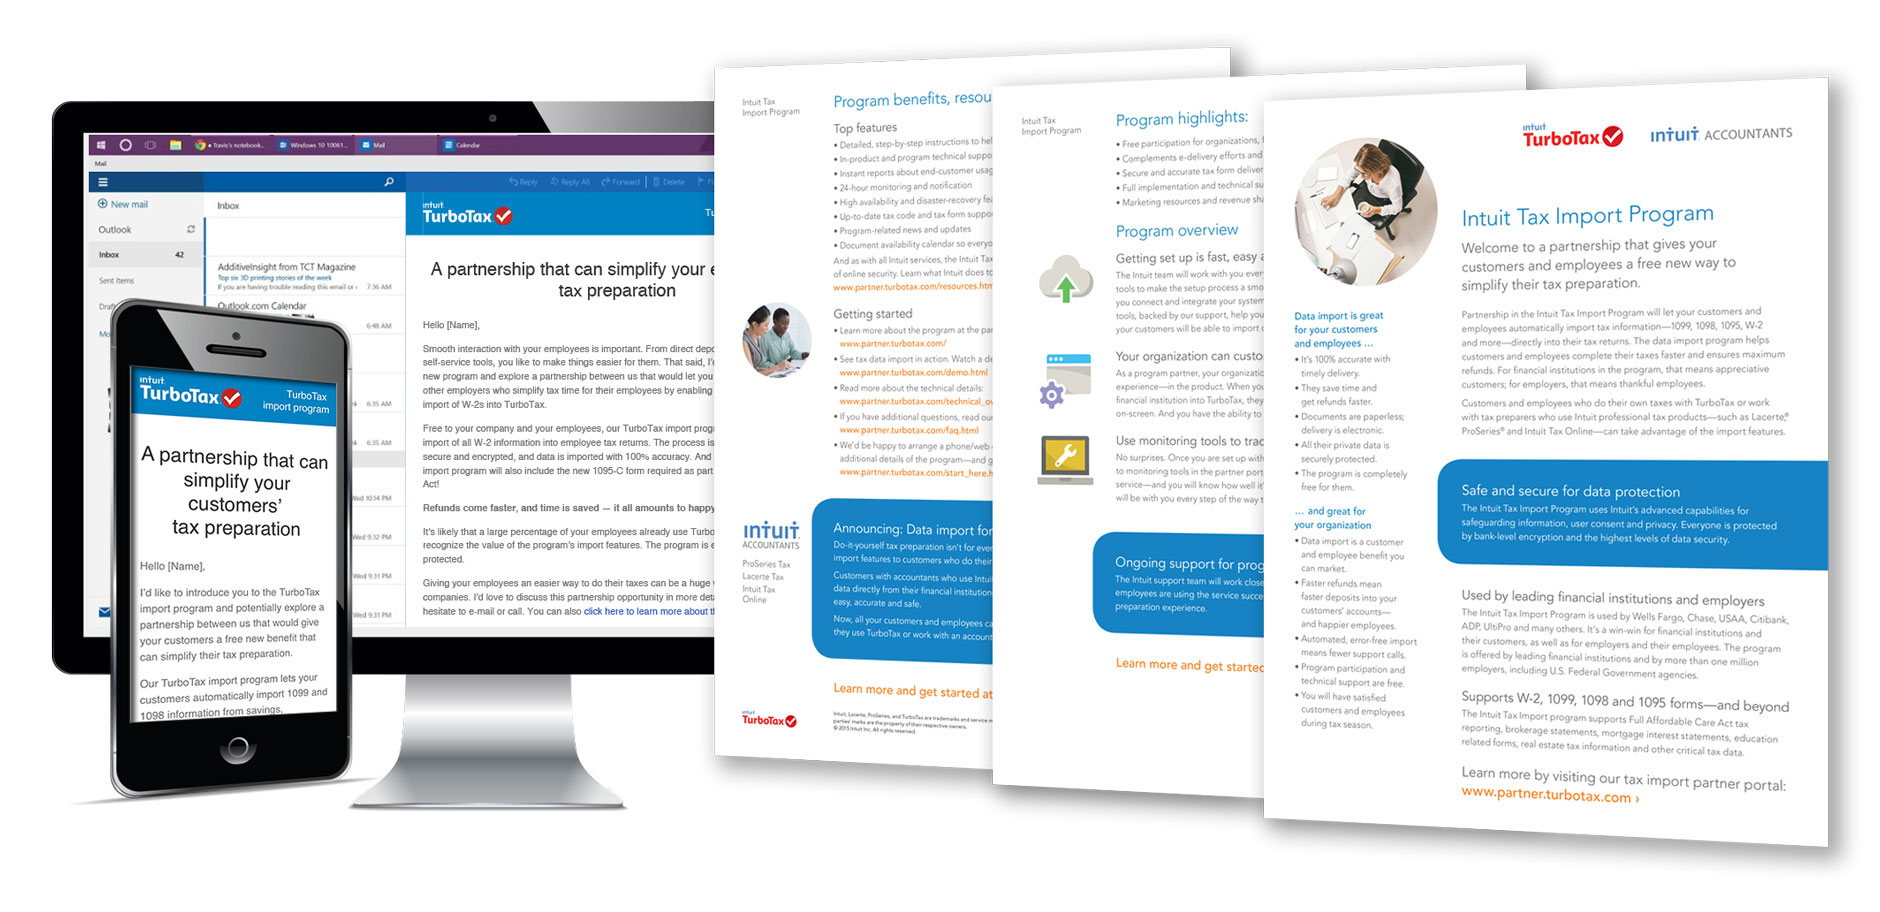 B2B emails and brochure